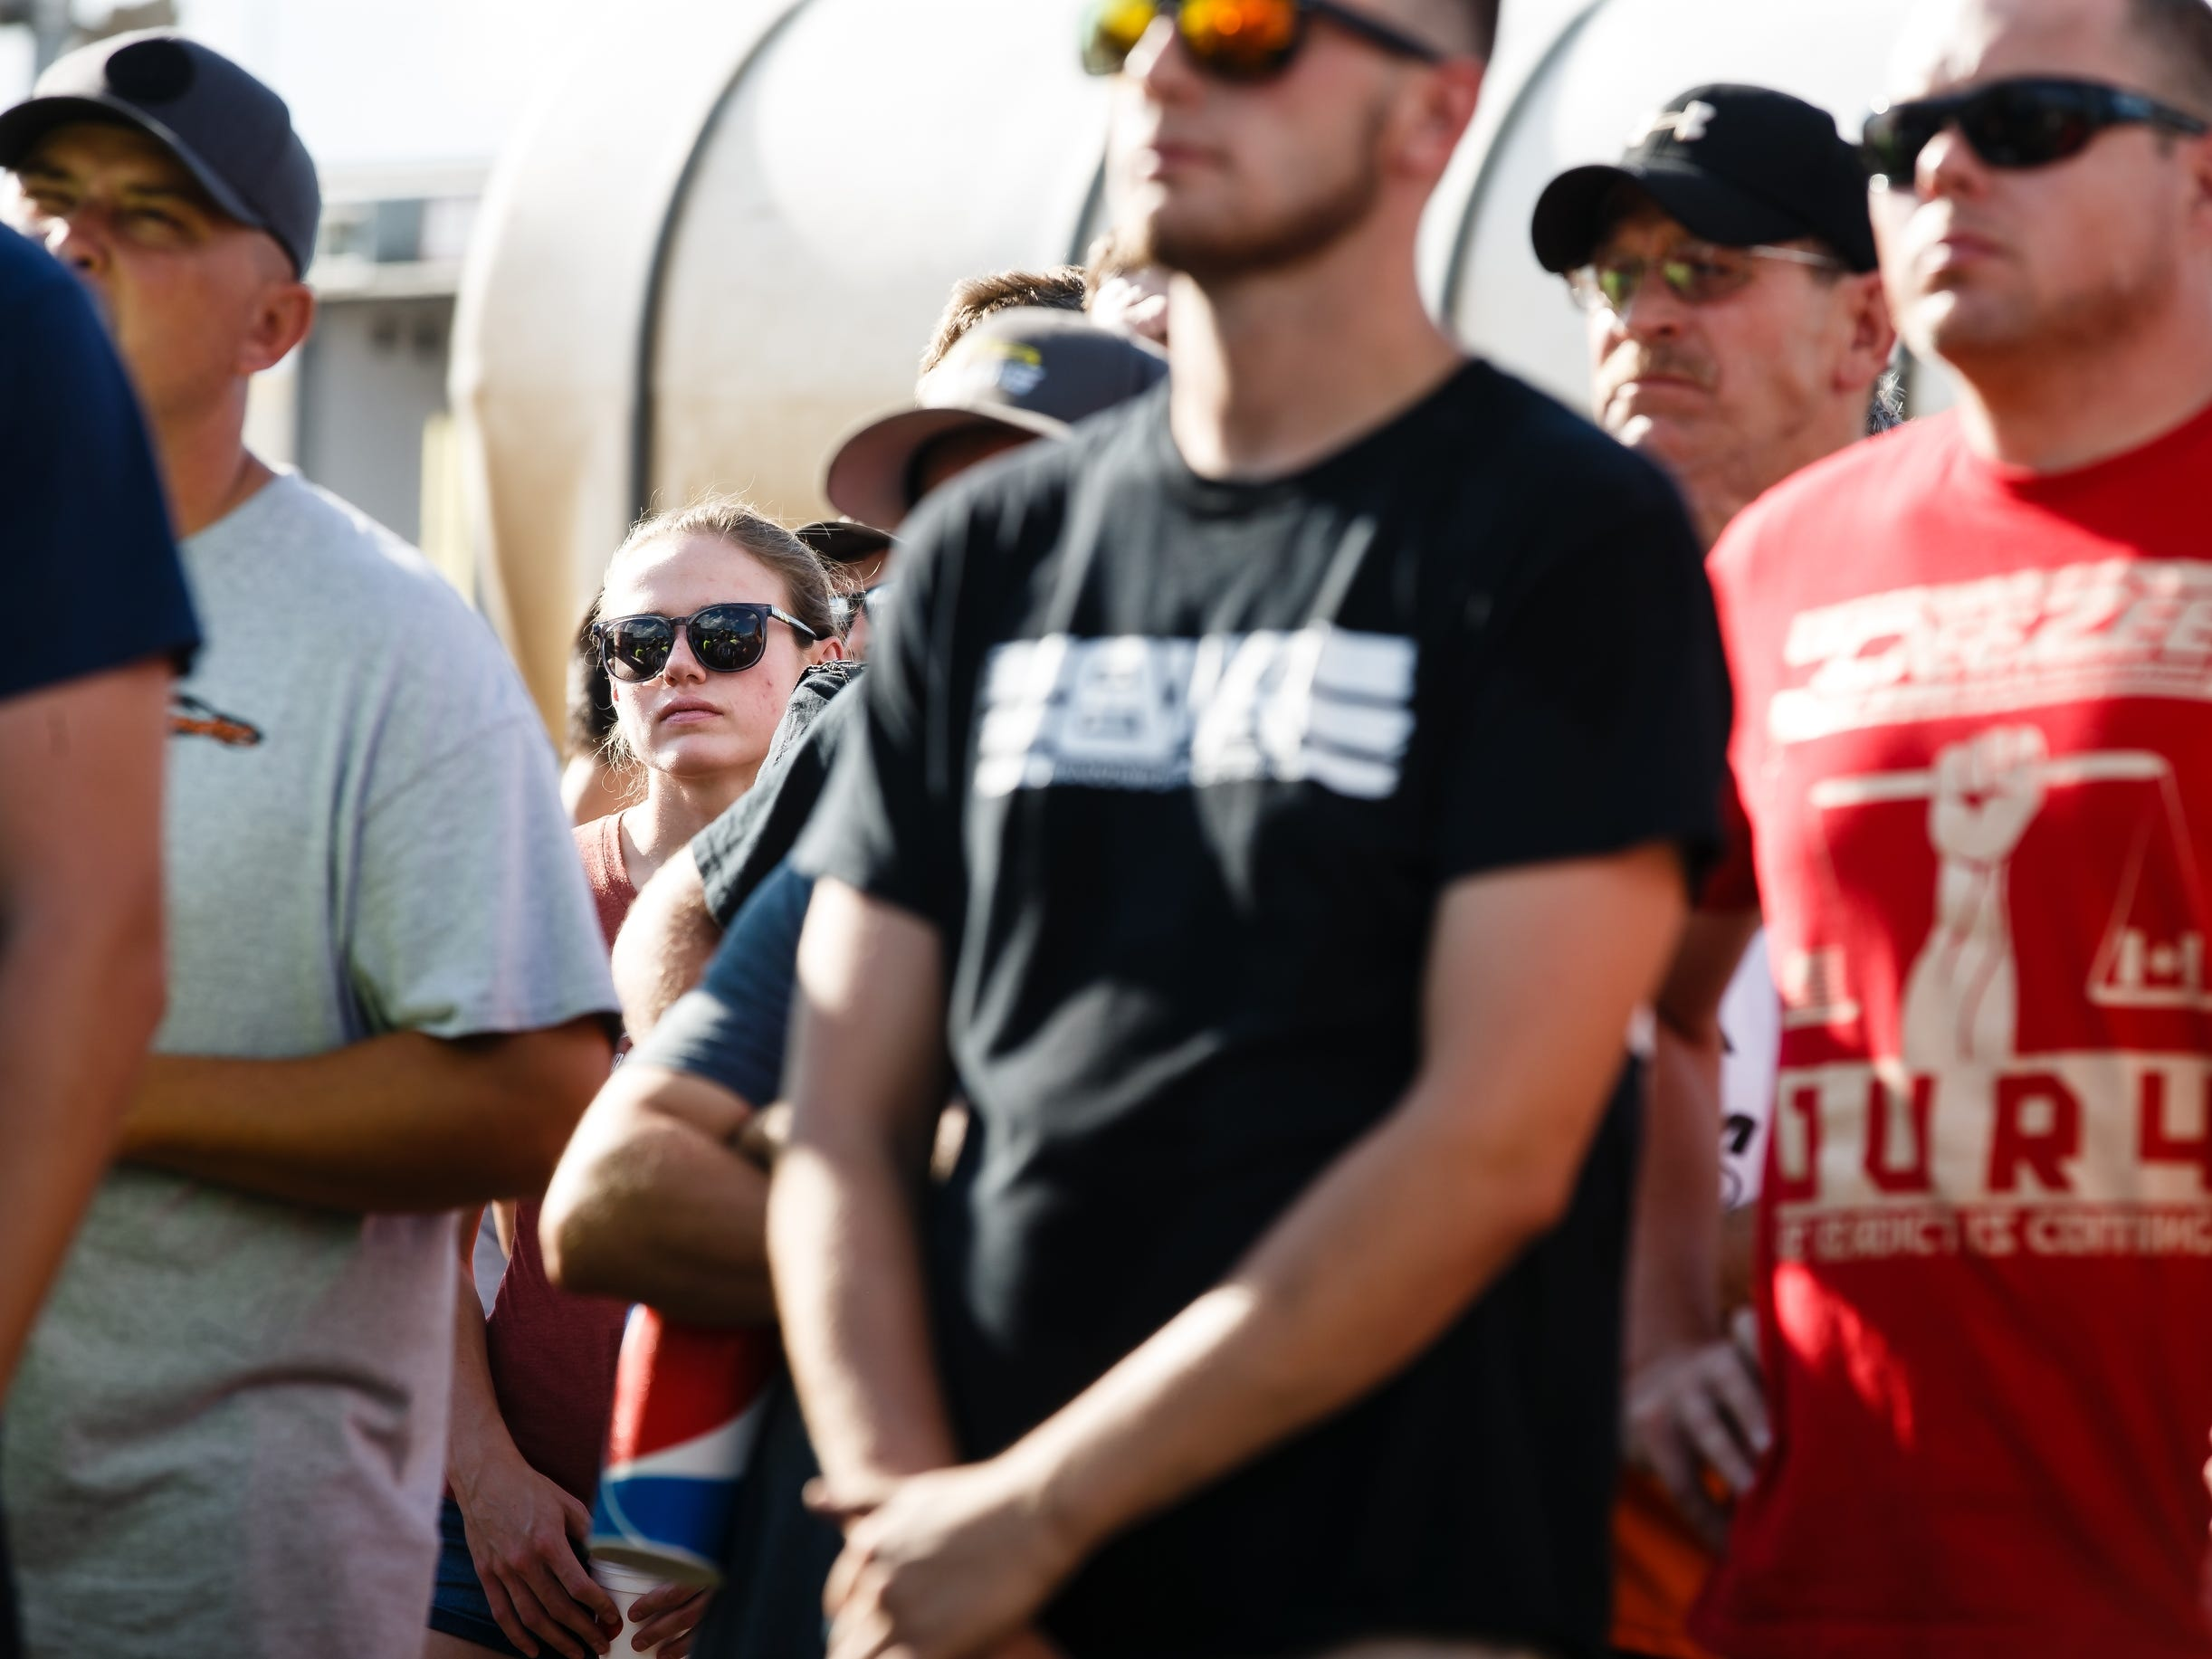 Driver of the 55 sprint car McKenna Haase, 21, stands and listens to race officials brief drivers before racing begins on Saturday, July 14, 2018, in Knoxville. Haase is the youngest and winningest racer in Sprint Car racing history and she is also, the only woman to win in Sprint Car racing history.